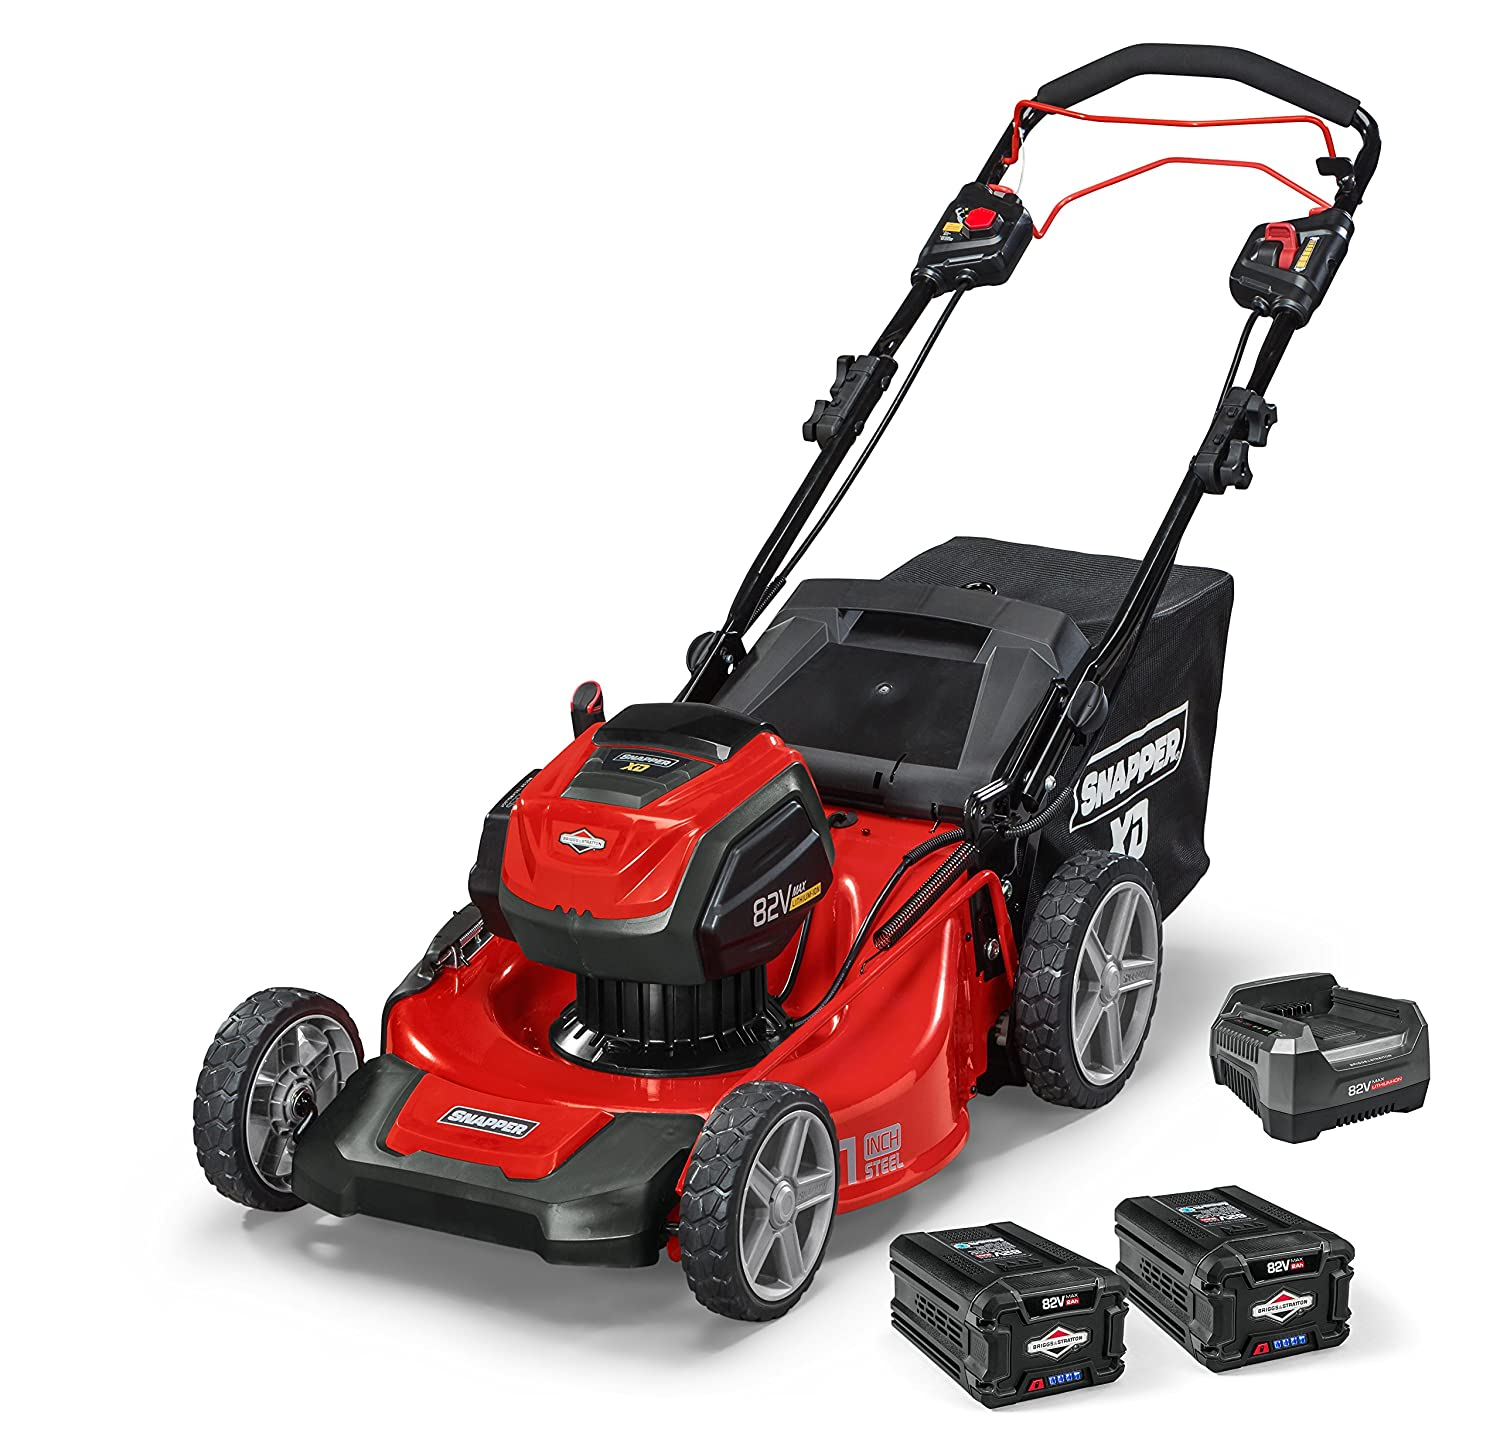 best electric start self-propelled lawn mower - Snapper